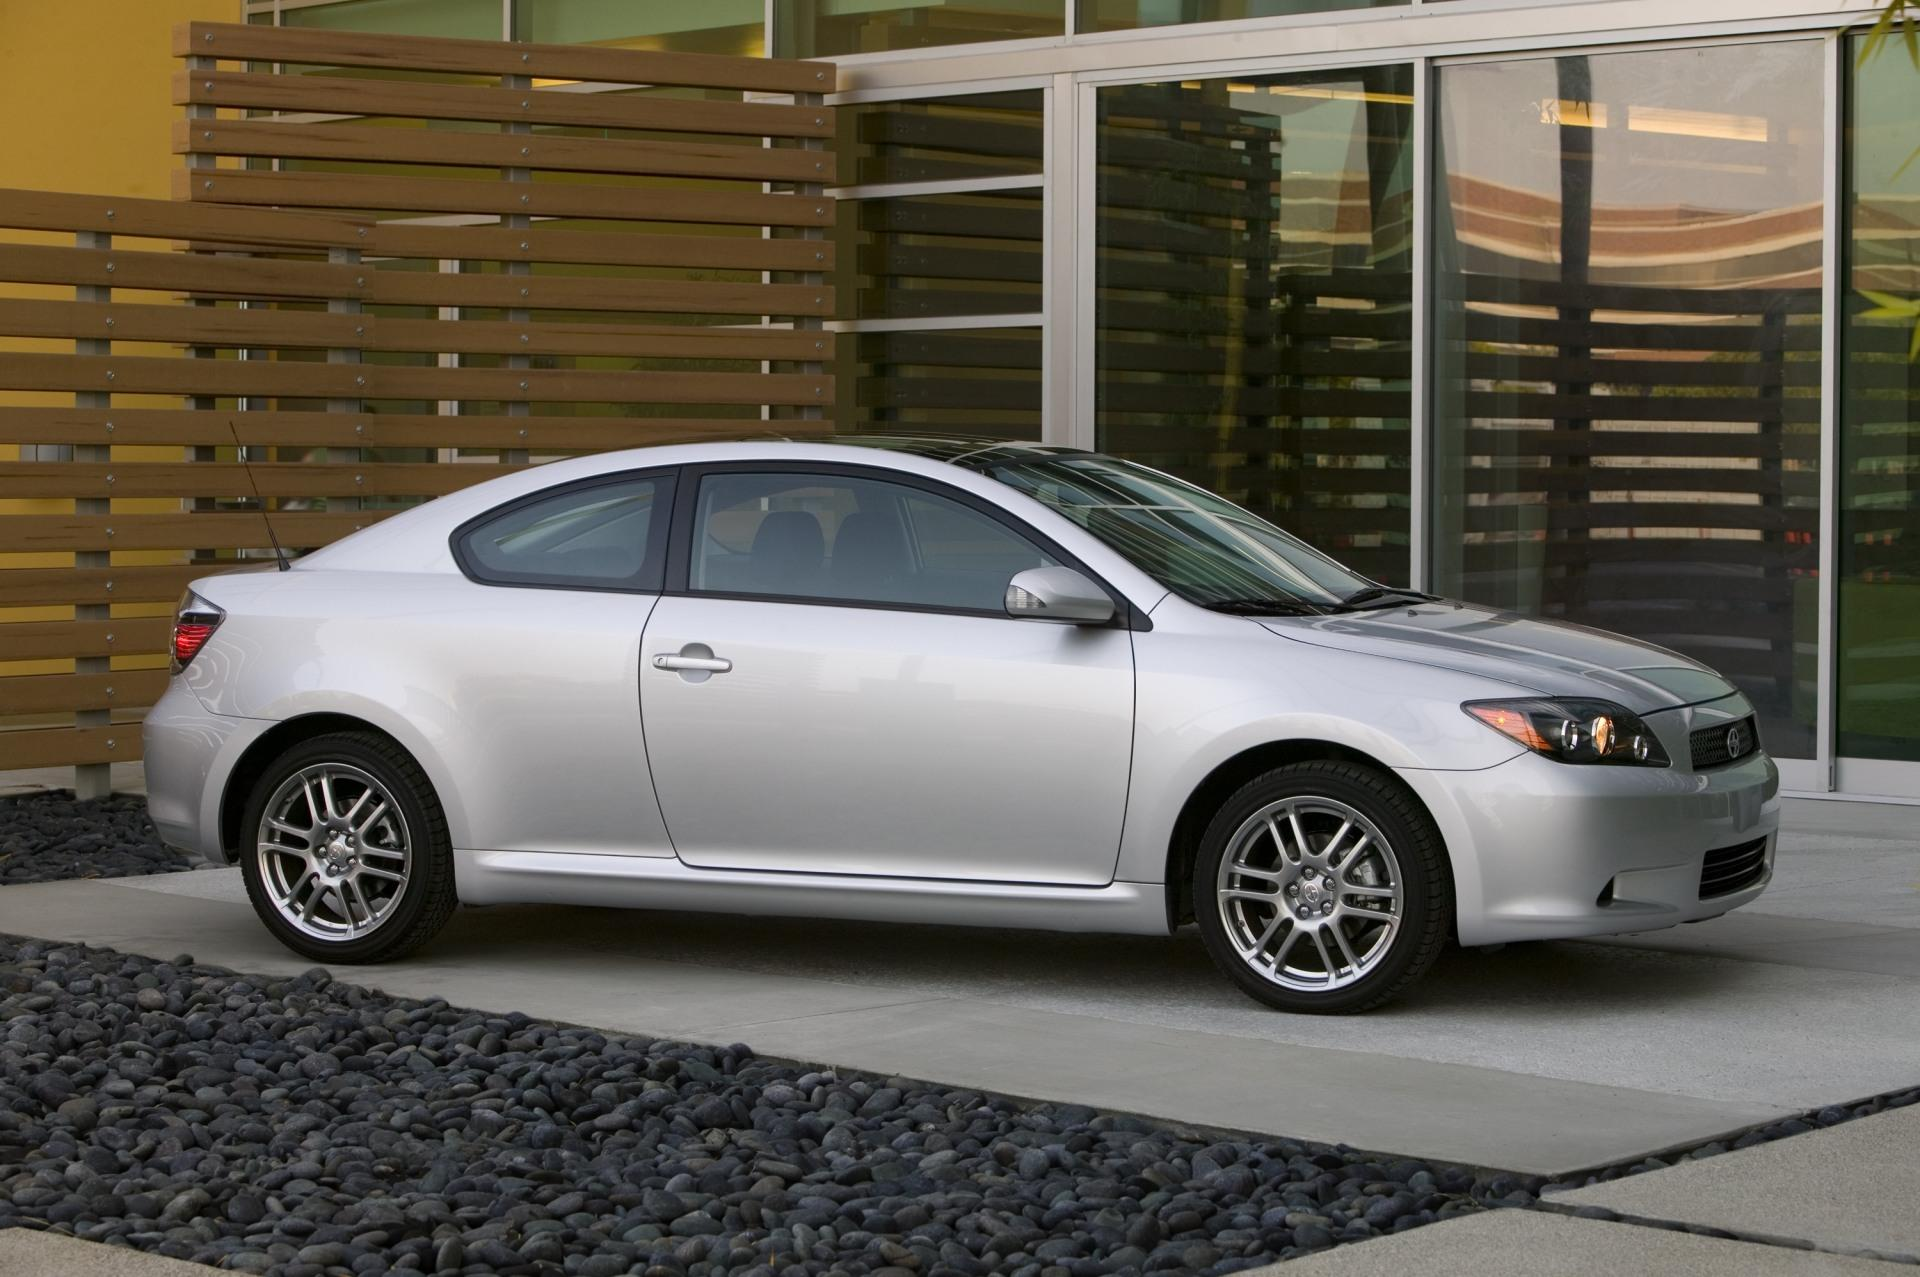 2010 Scion tC News and Information | conceptcarz.com